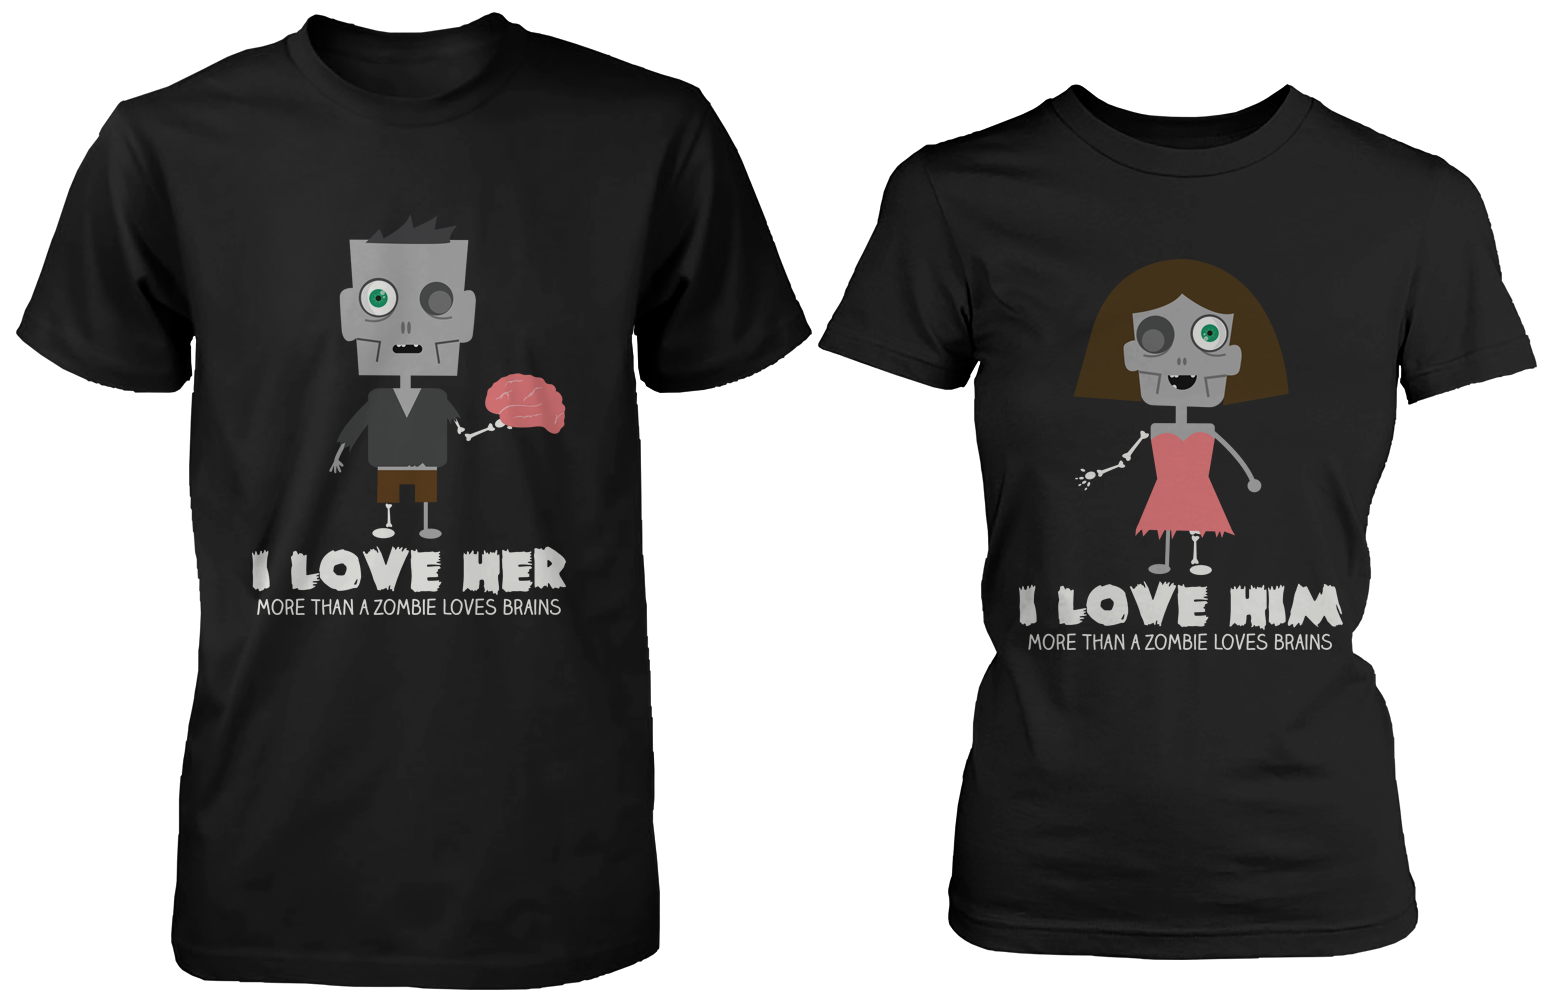 Halloween 365 in love matching gifts ideas zombie shirts for boyfriend and girlfriend solutioingenieria Image collections